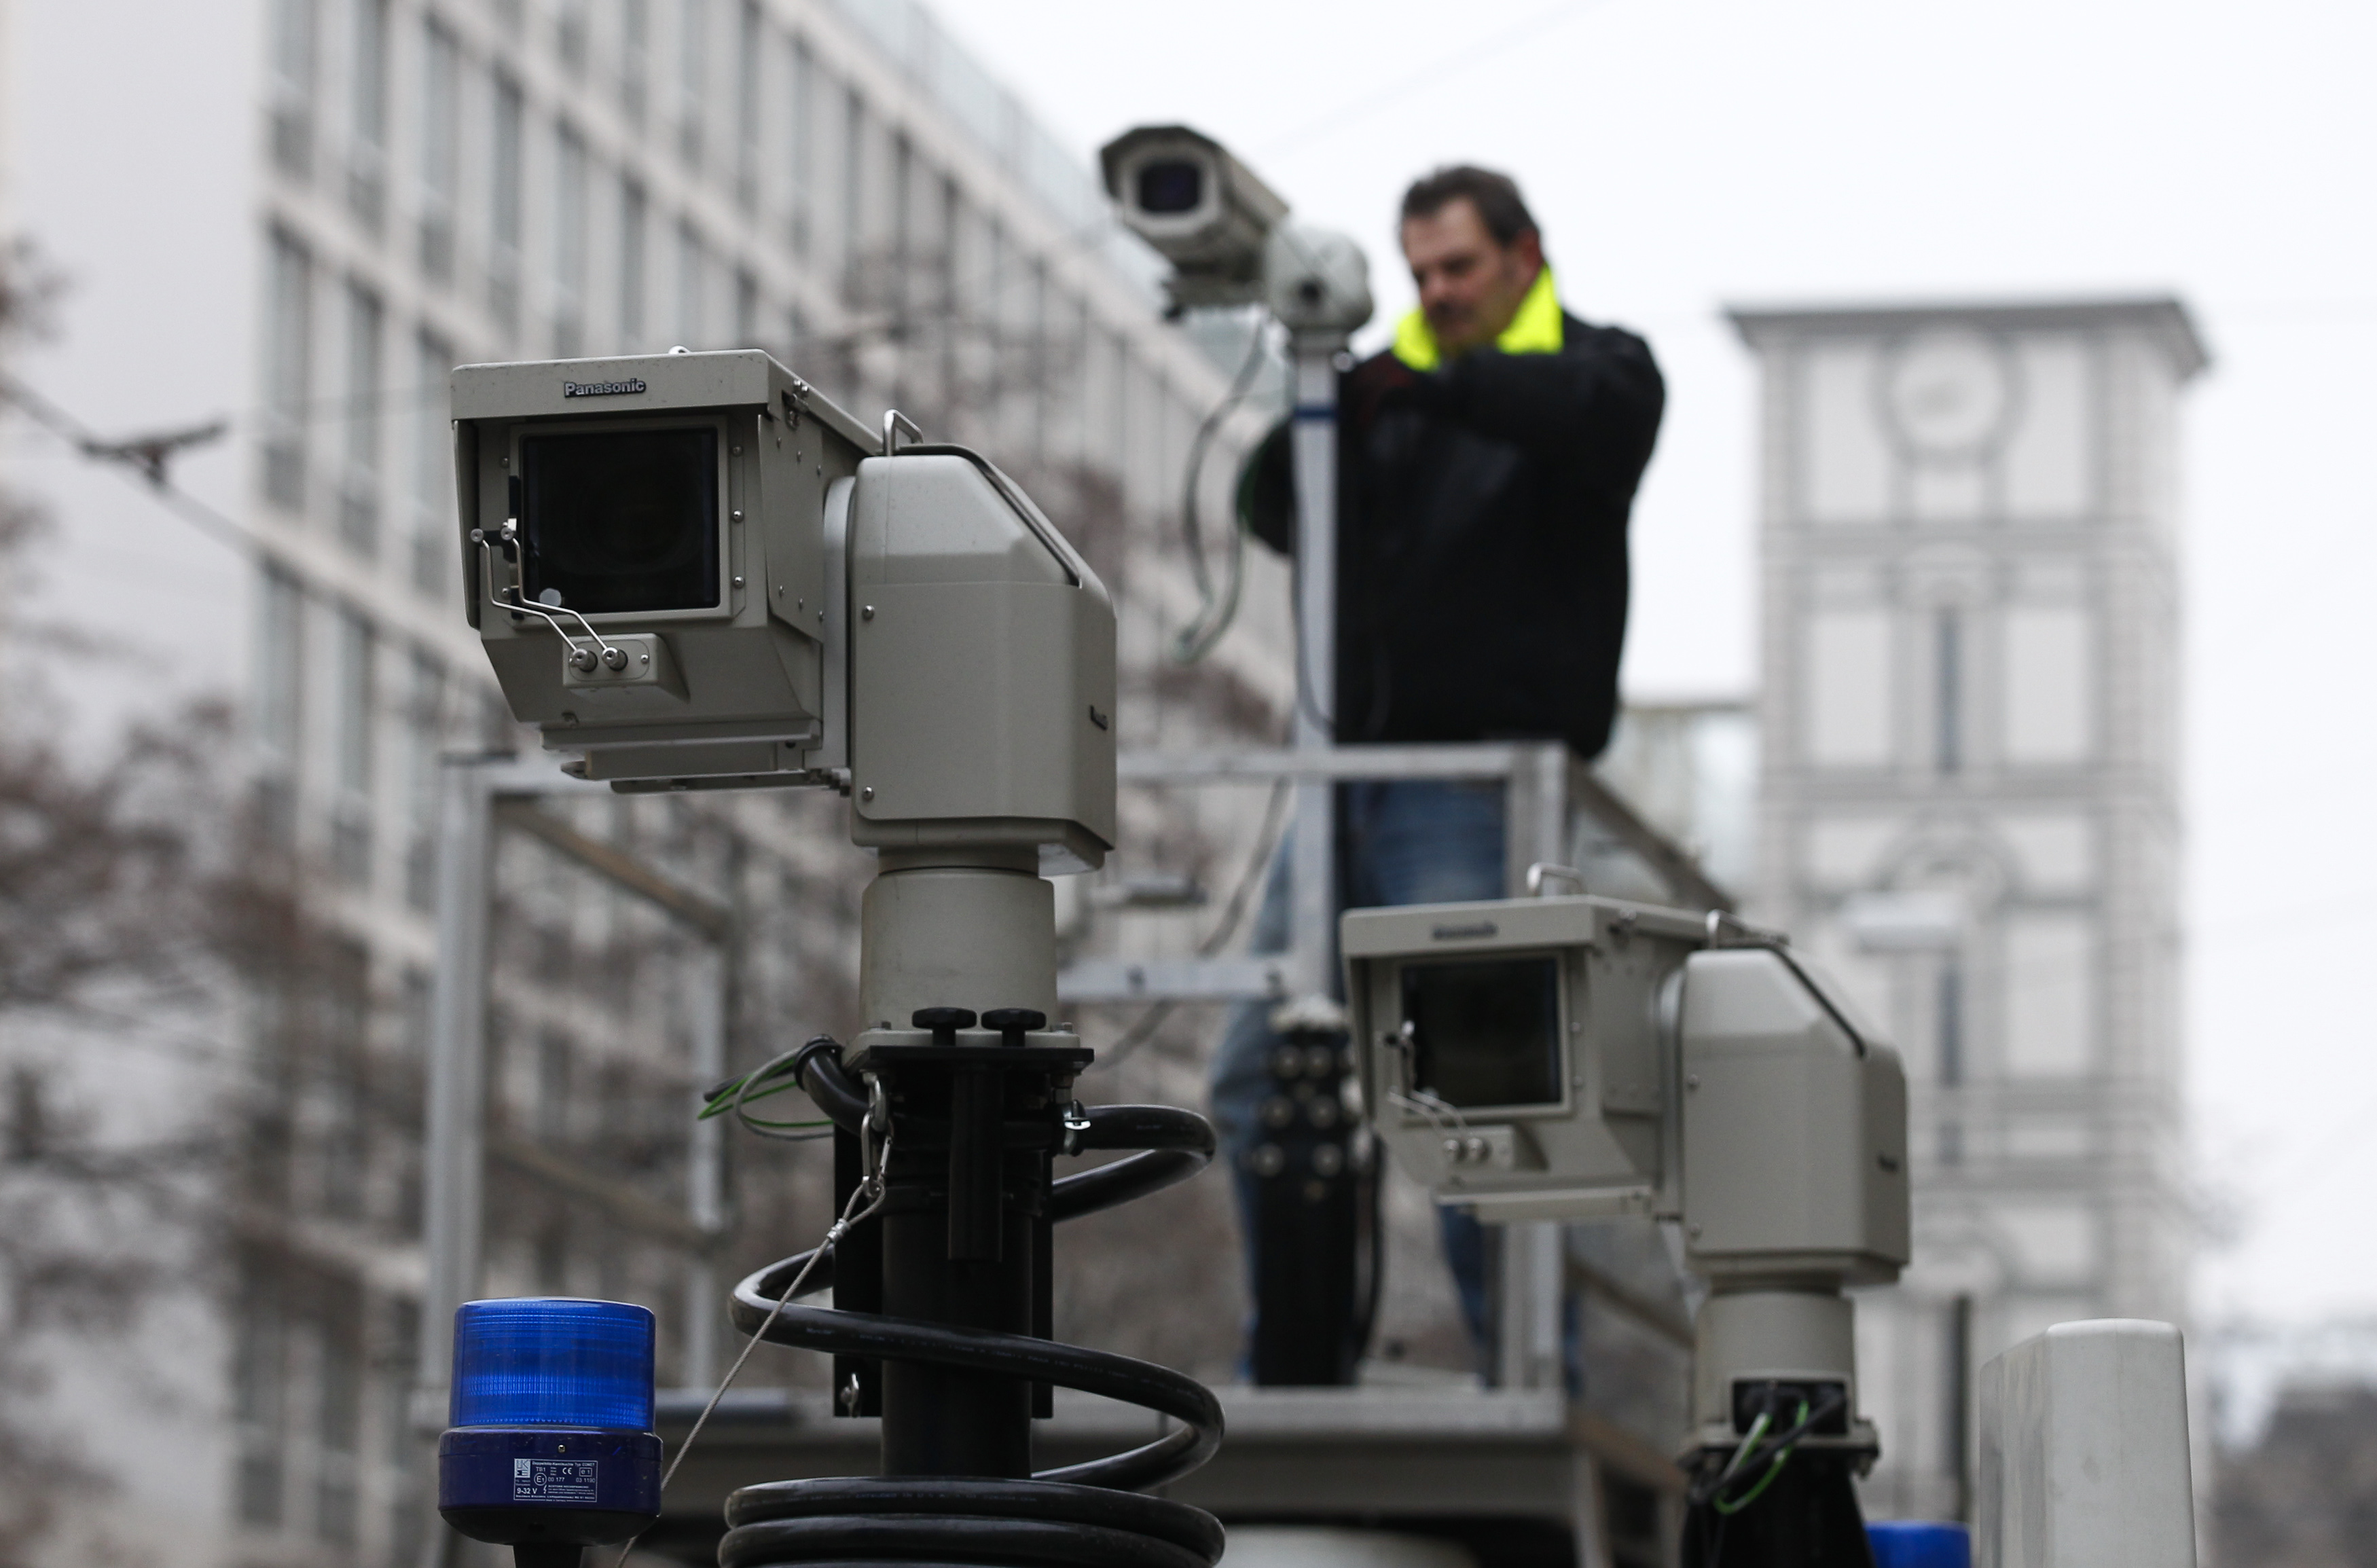 A man assembles police observation cameras near the Bayerischer Hof hotel before the start of the 50th Conference on Security Policy in Munich on January 31, 2014